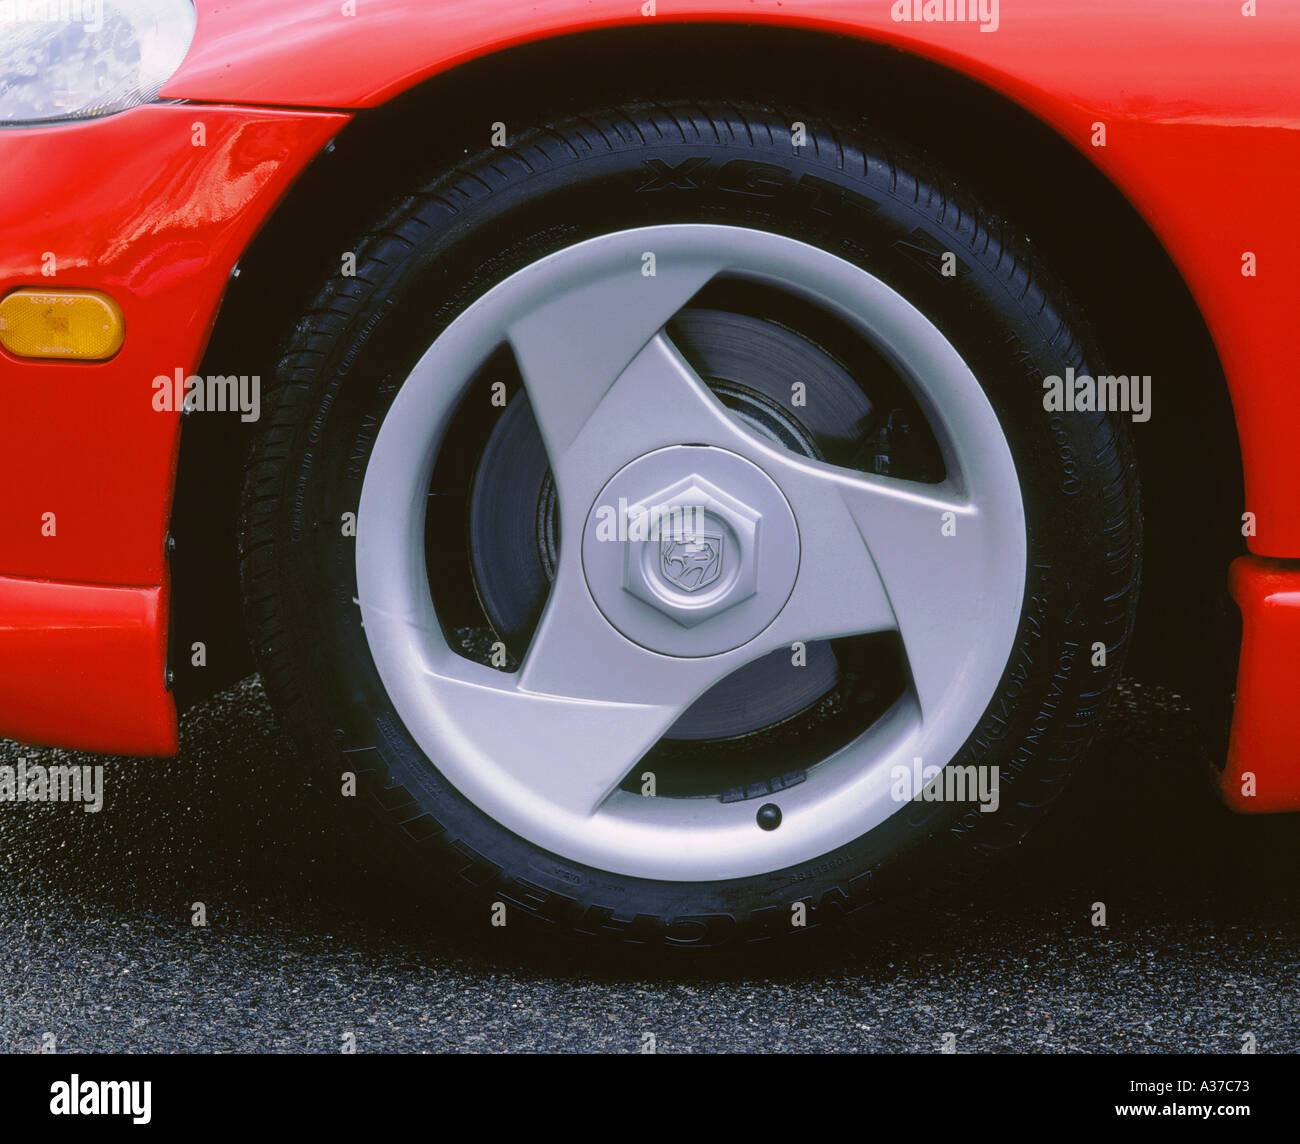 1993 Dodge Viper alloy wheel - Stock Image